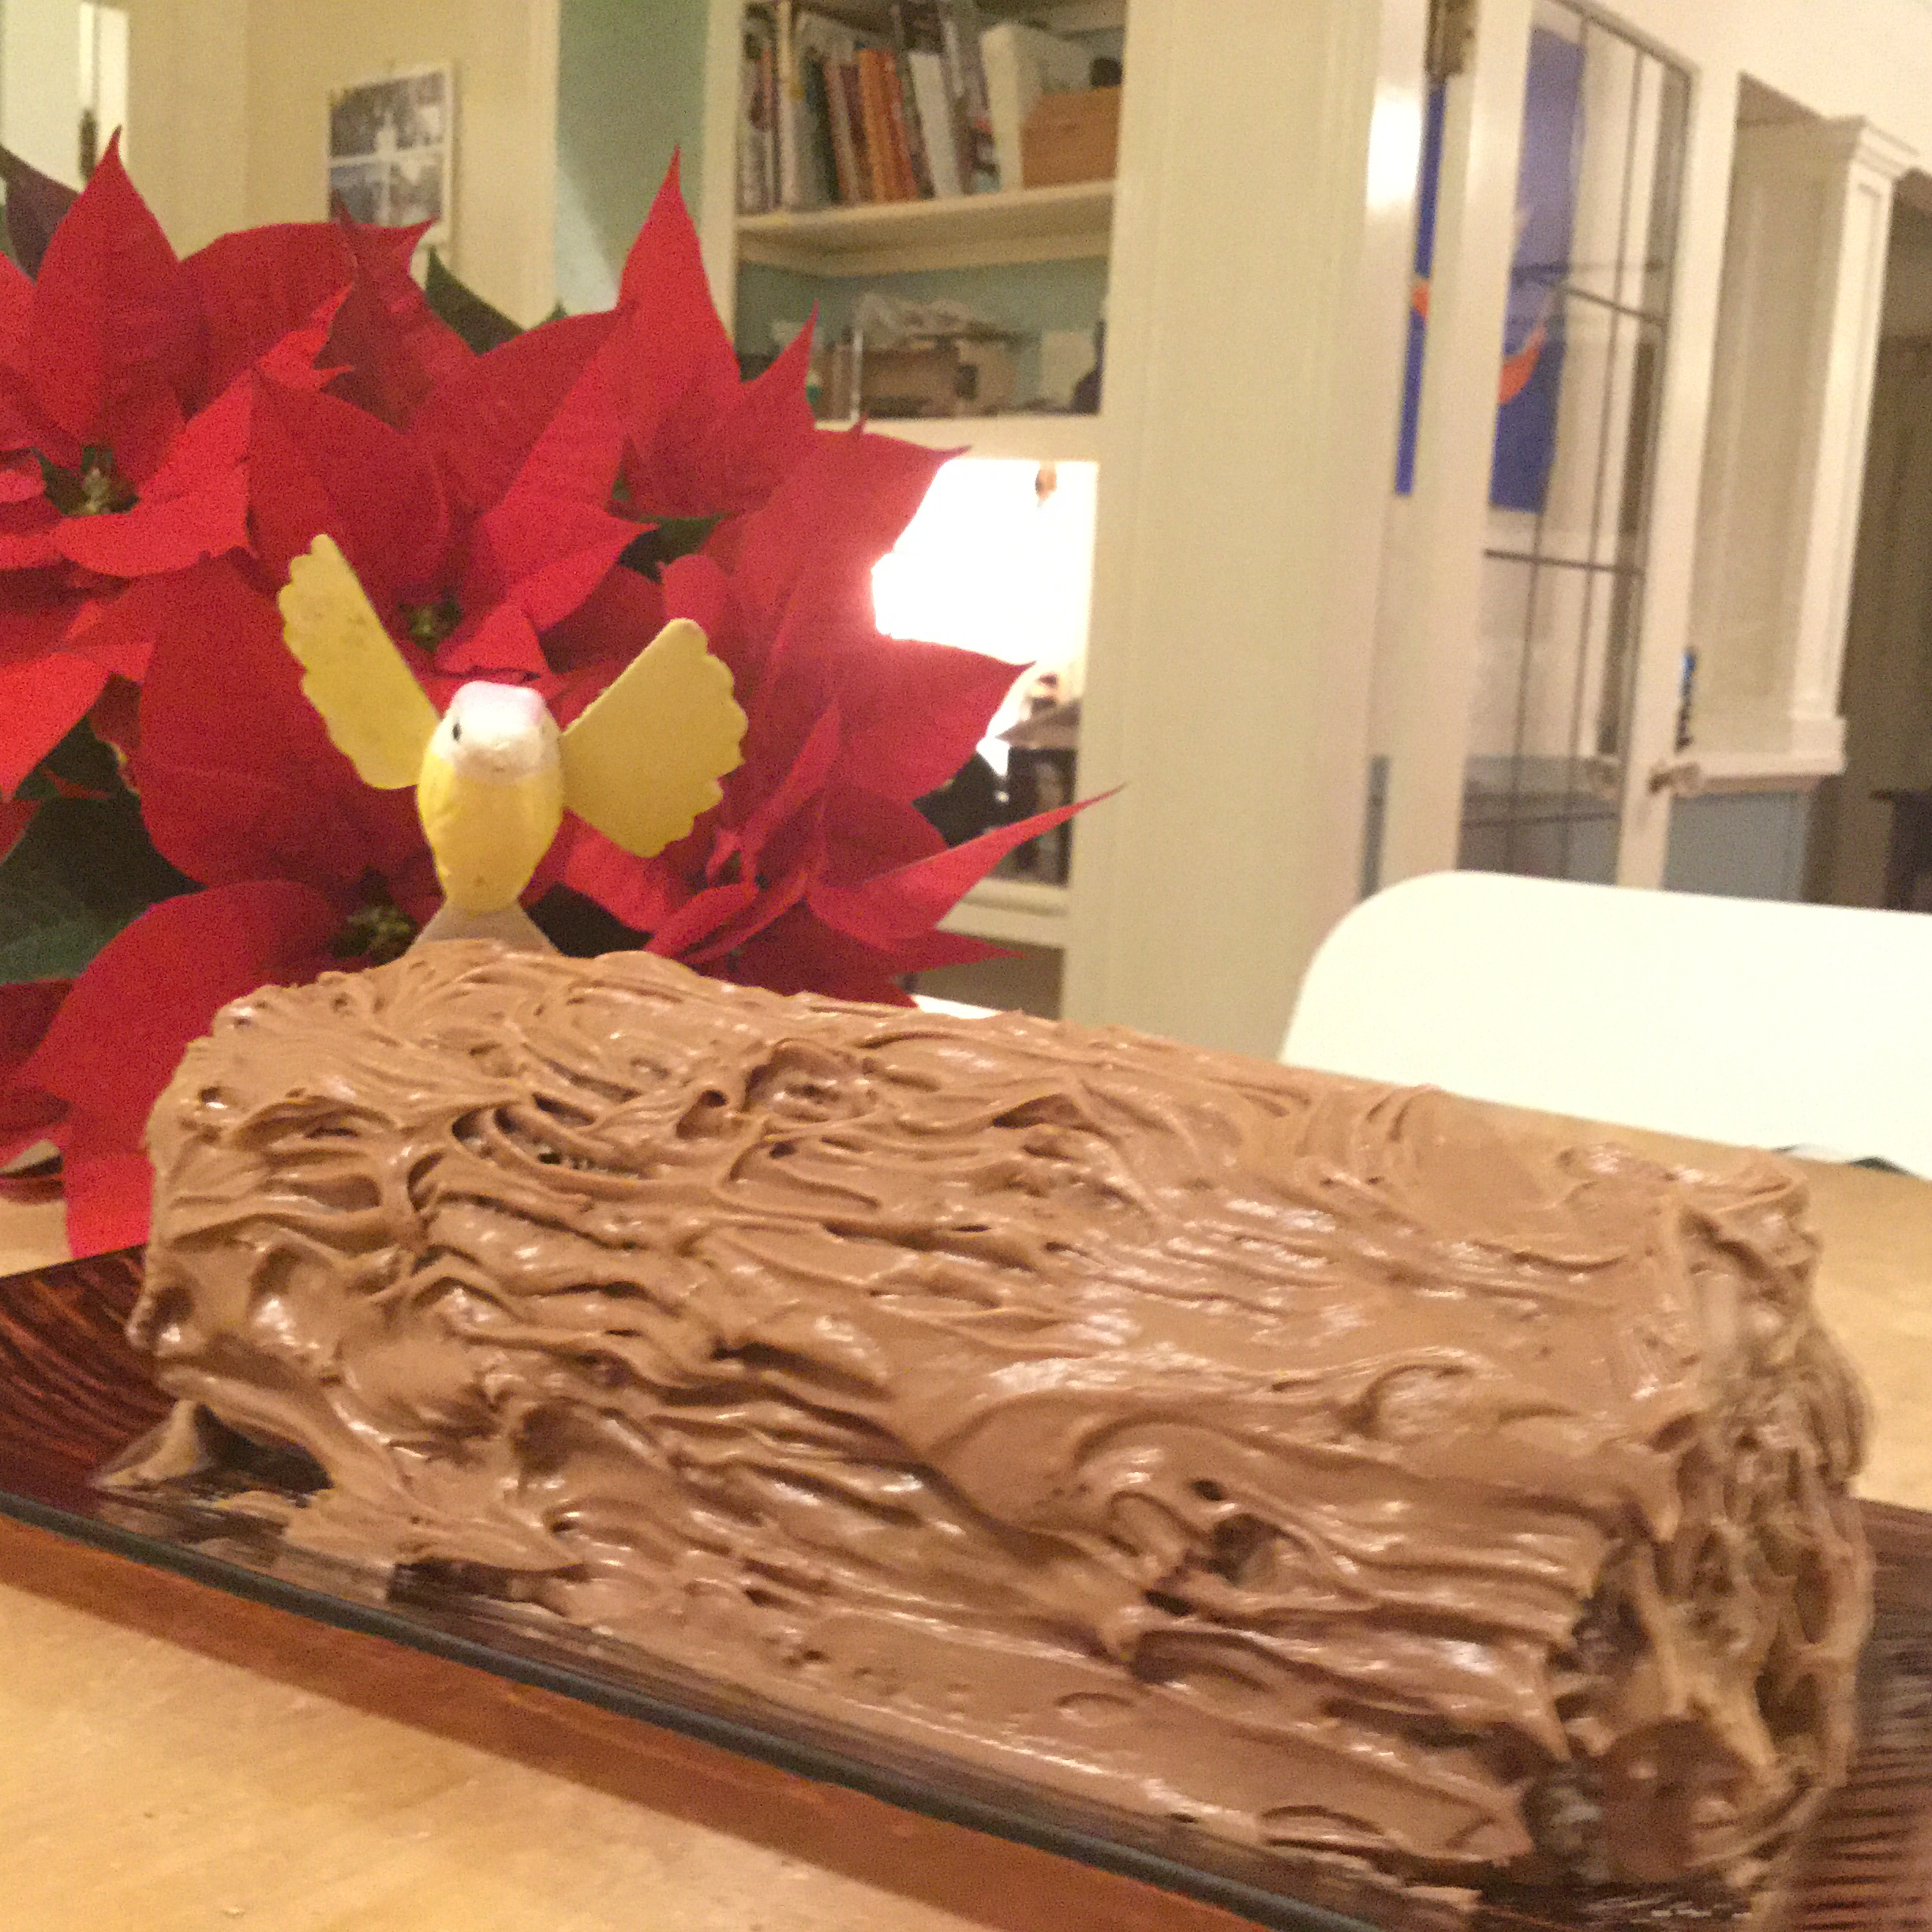 Chocolate Decadence Yule Log Brian Bowman